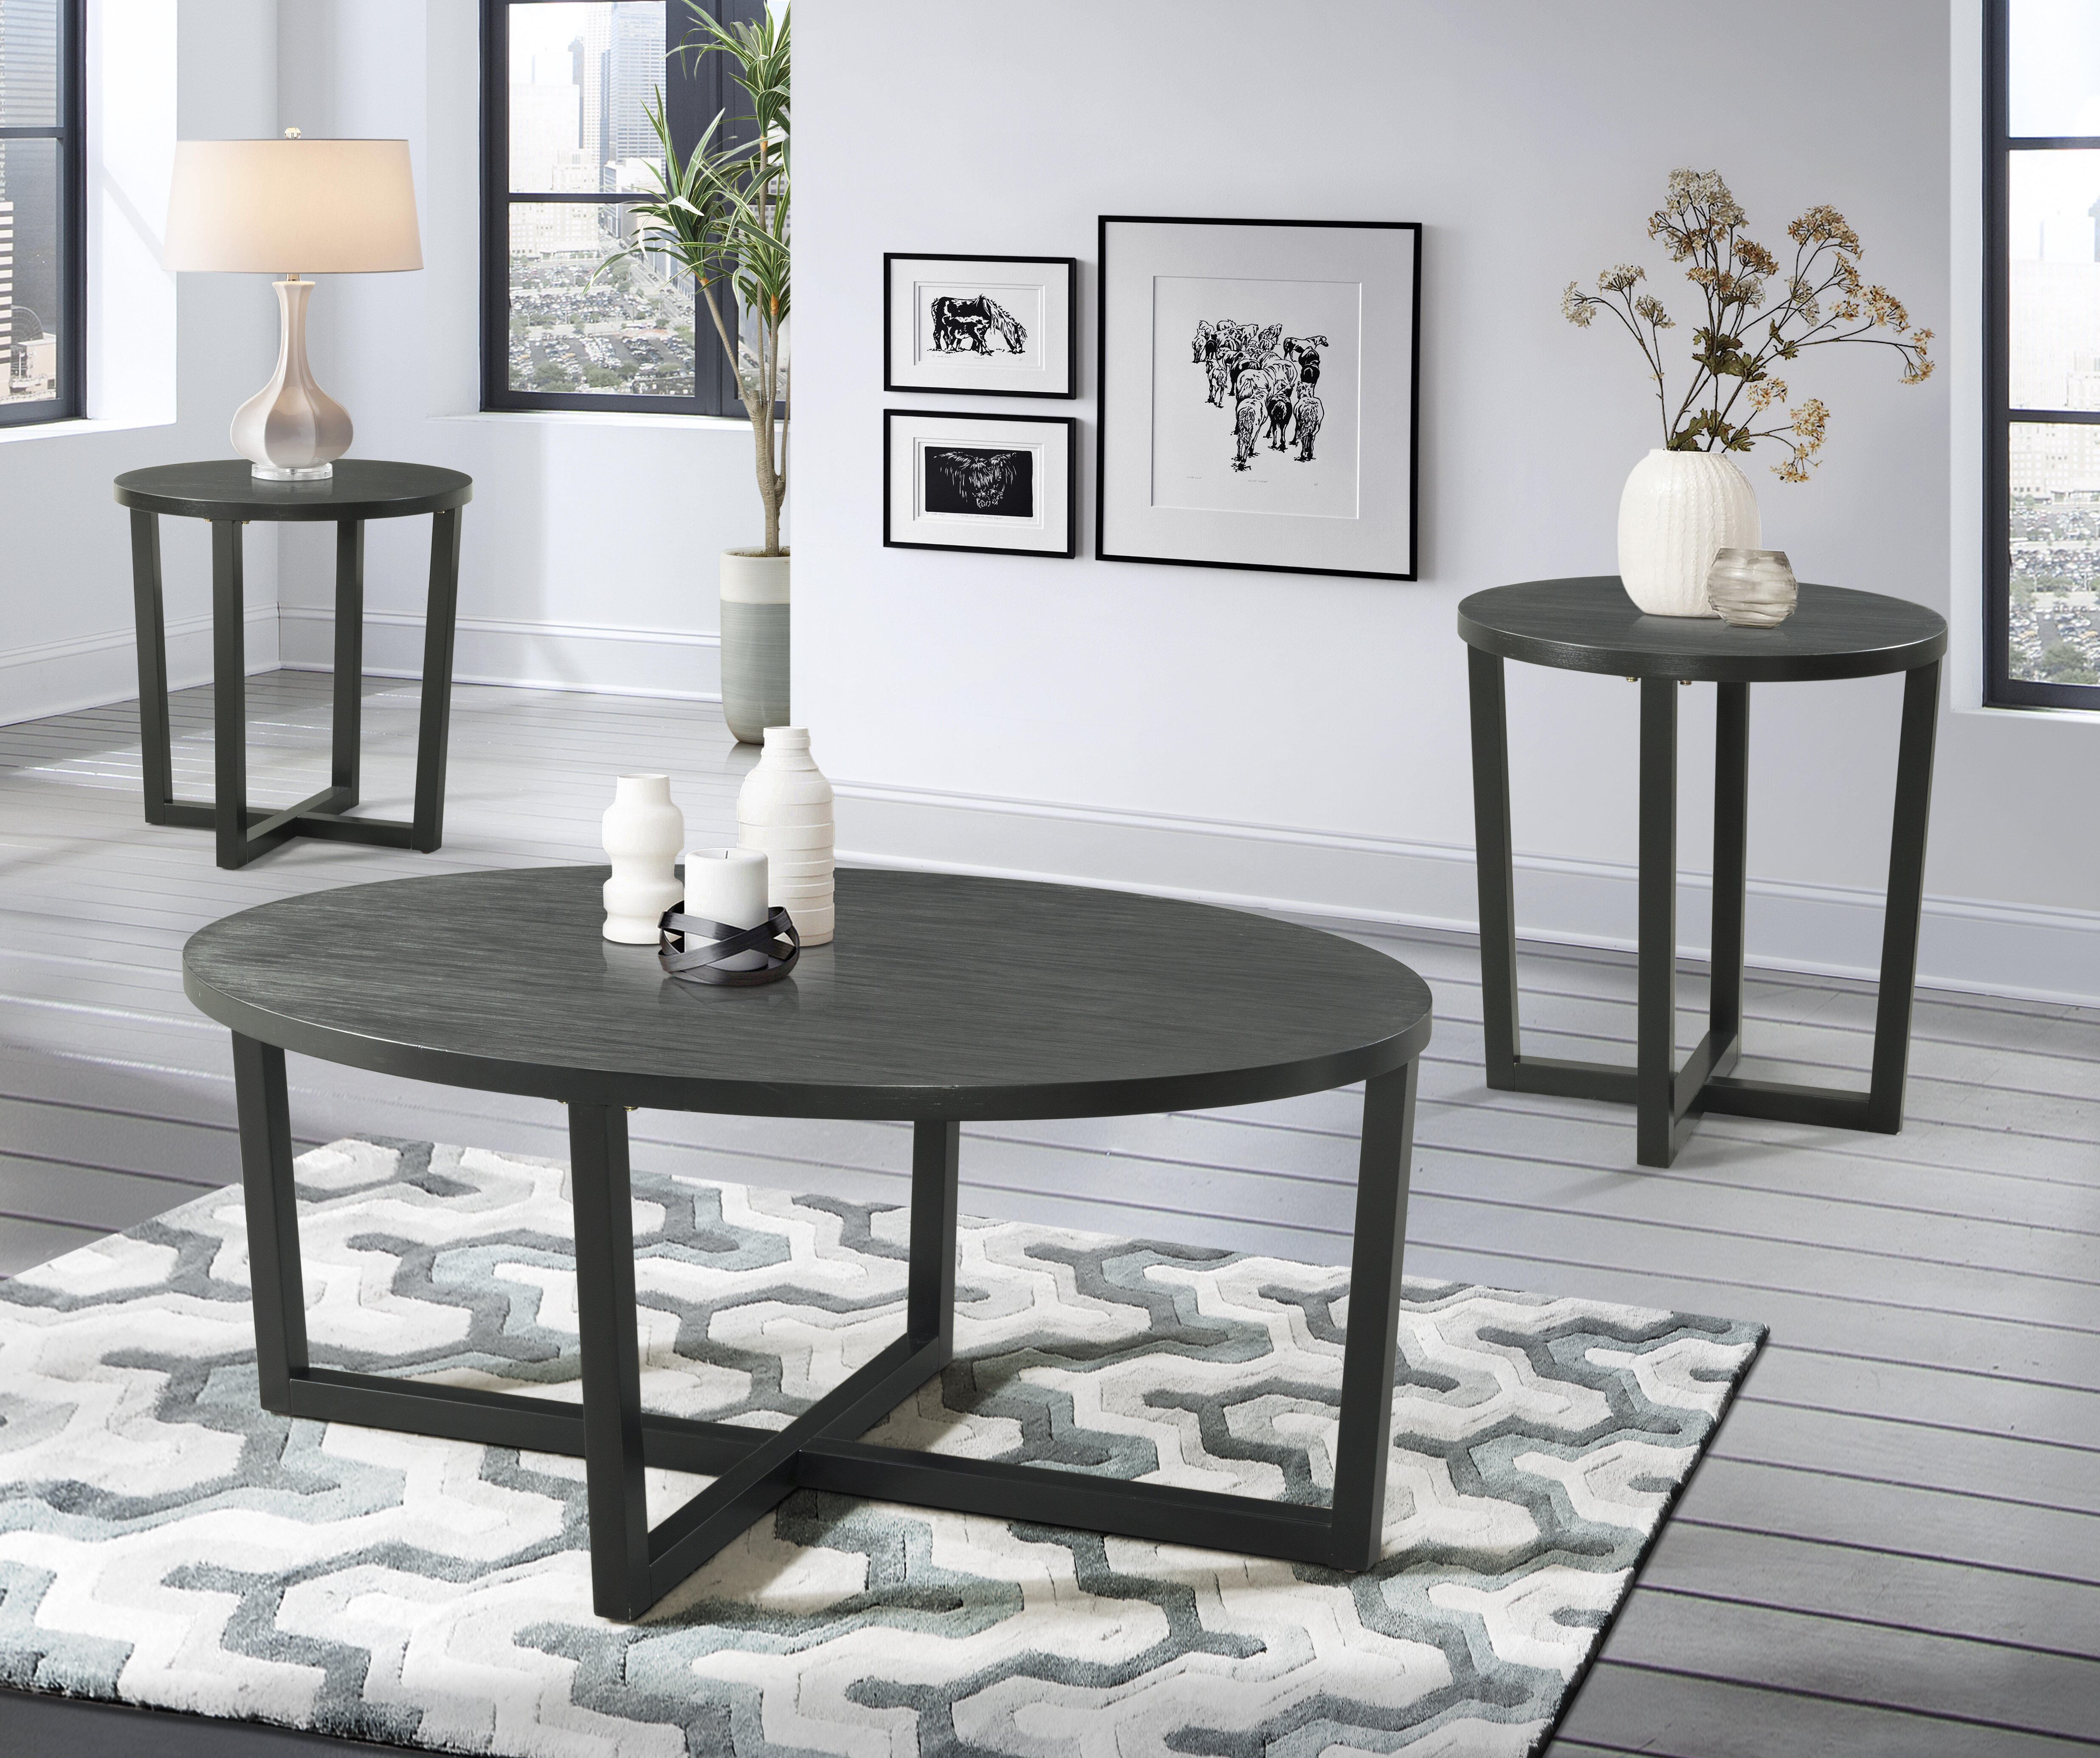 Peachy Brodbeck 3 Piece Occasional Coffee Table Set Interior Design Ideas Clesiryabchikinfo